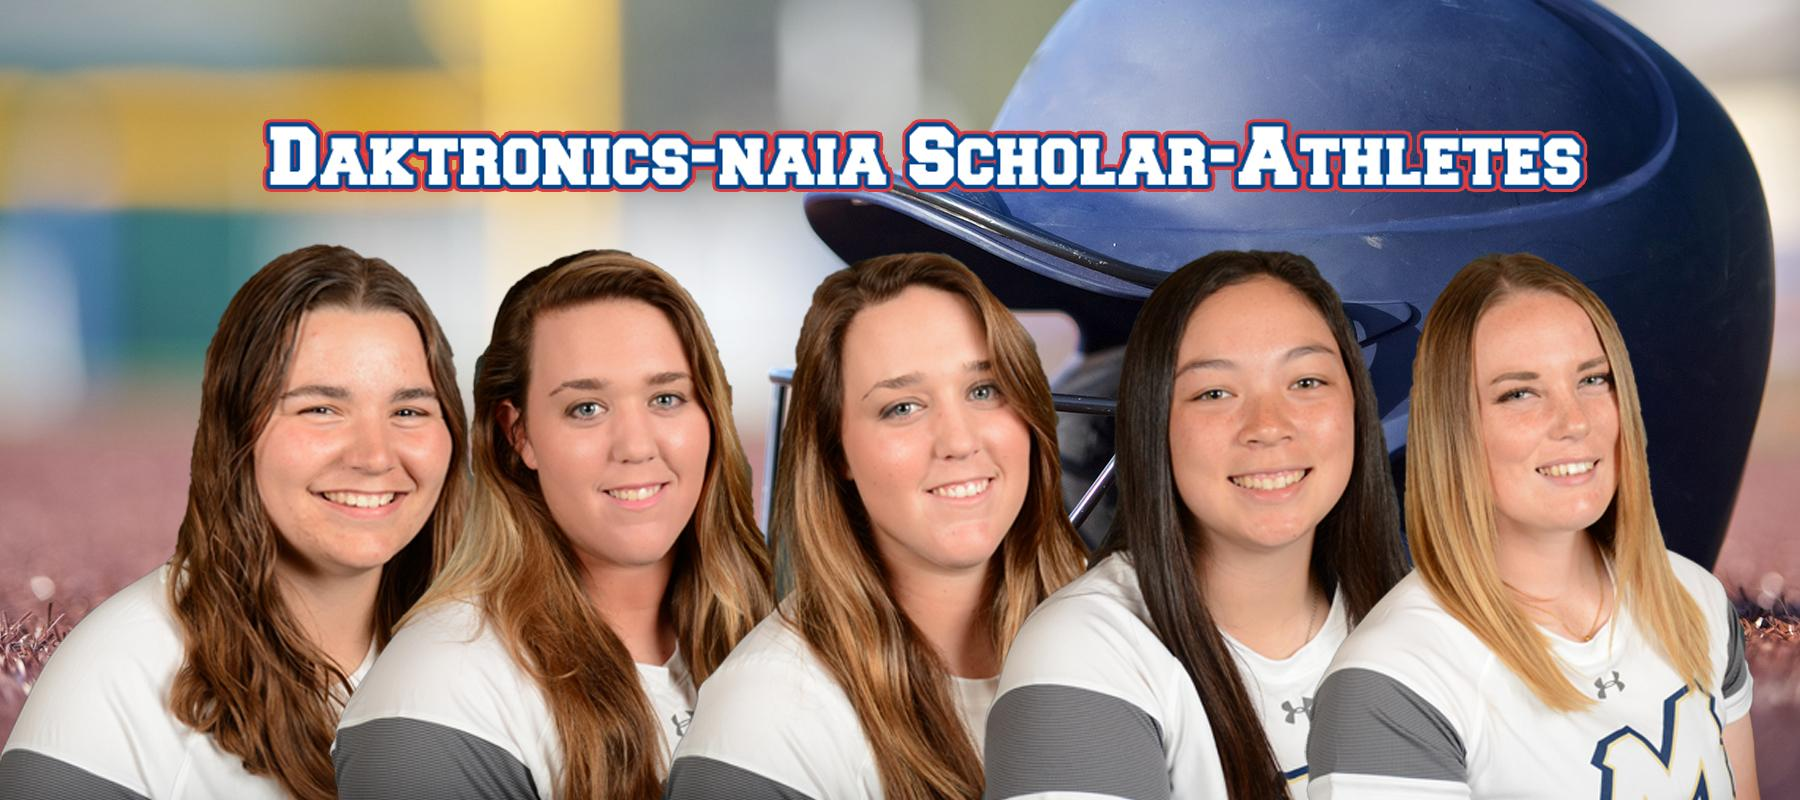 Softball places five on NAIA-Daktronics Scholar-Athlete team